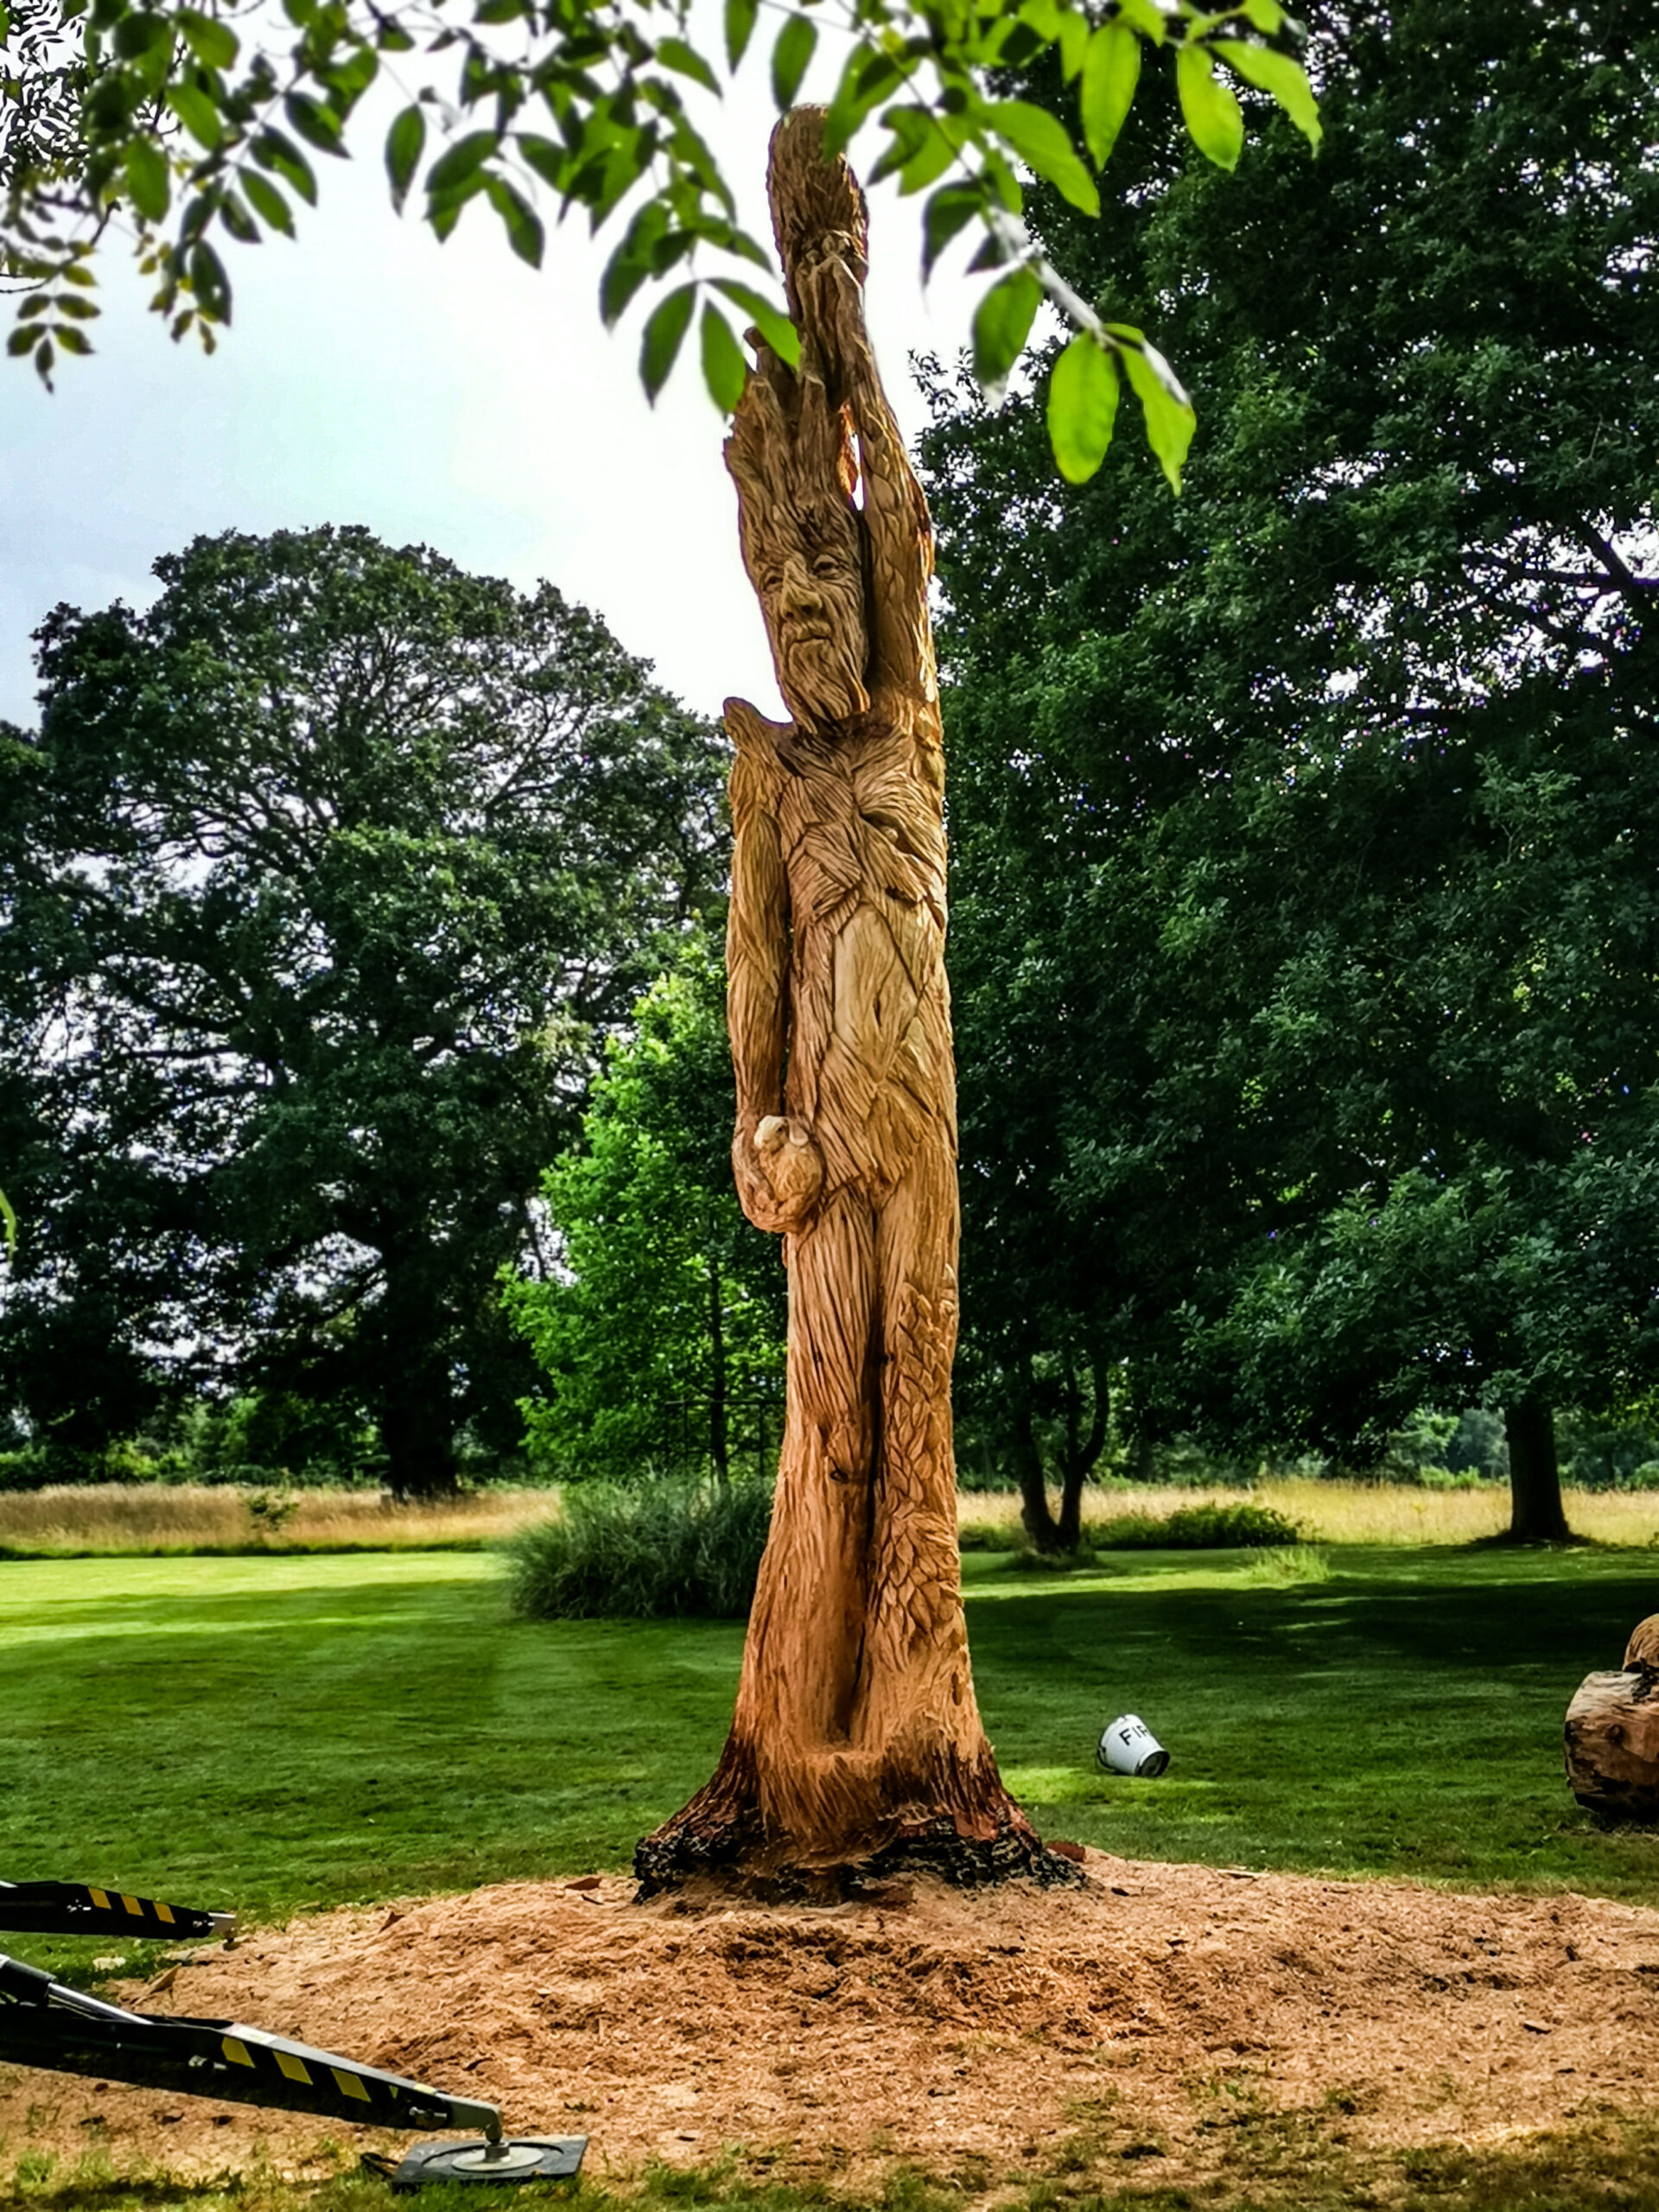 3m tall scultpure of an Ent, created from the stump of a monkey puzzle tree by chainsaw artist Simon o'Rourke